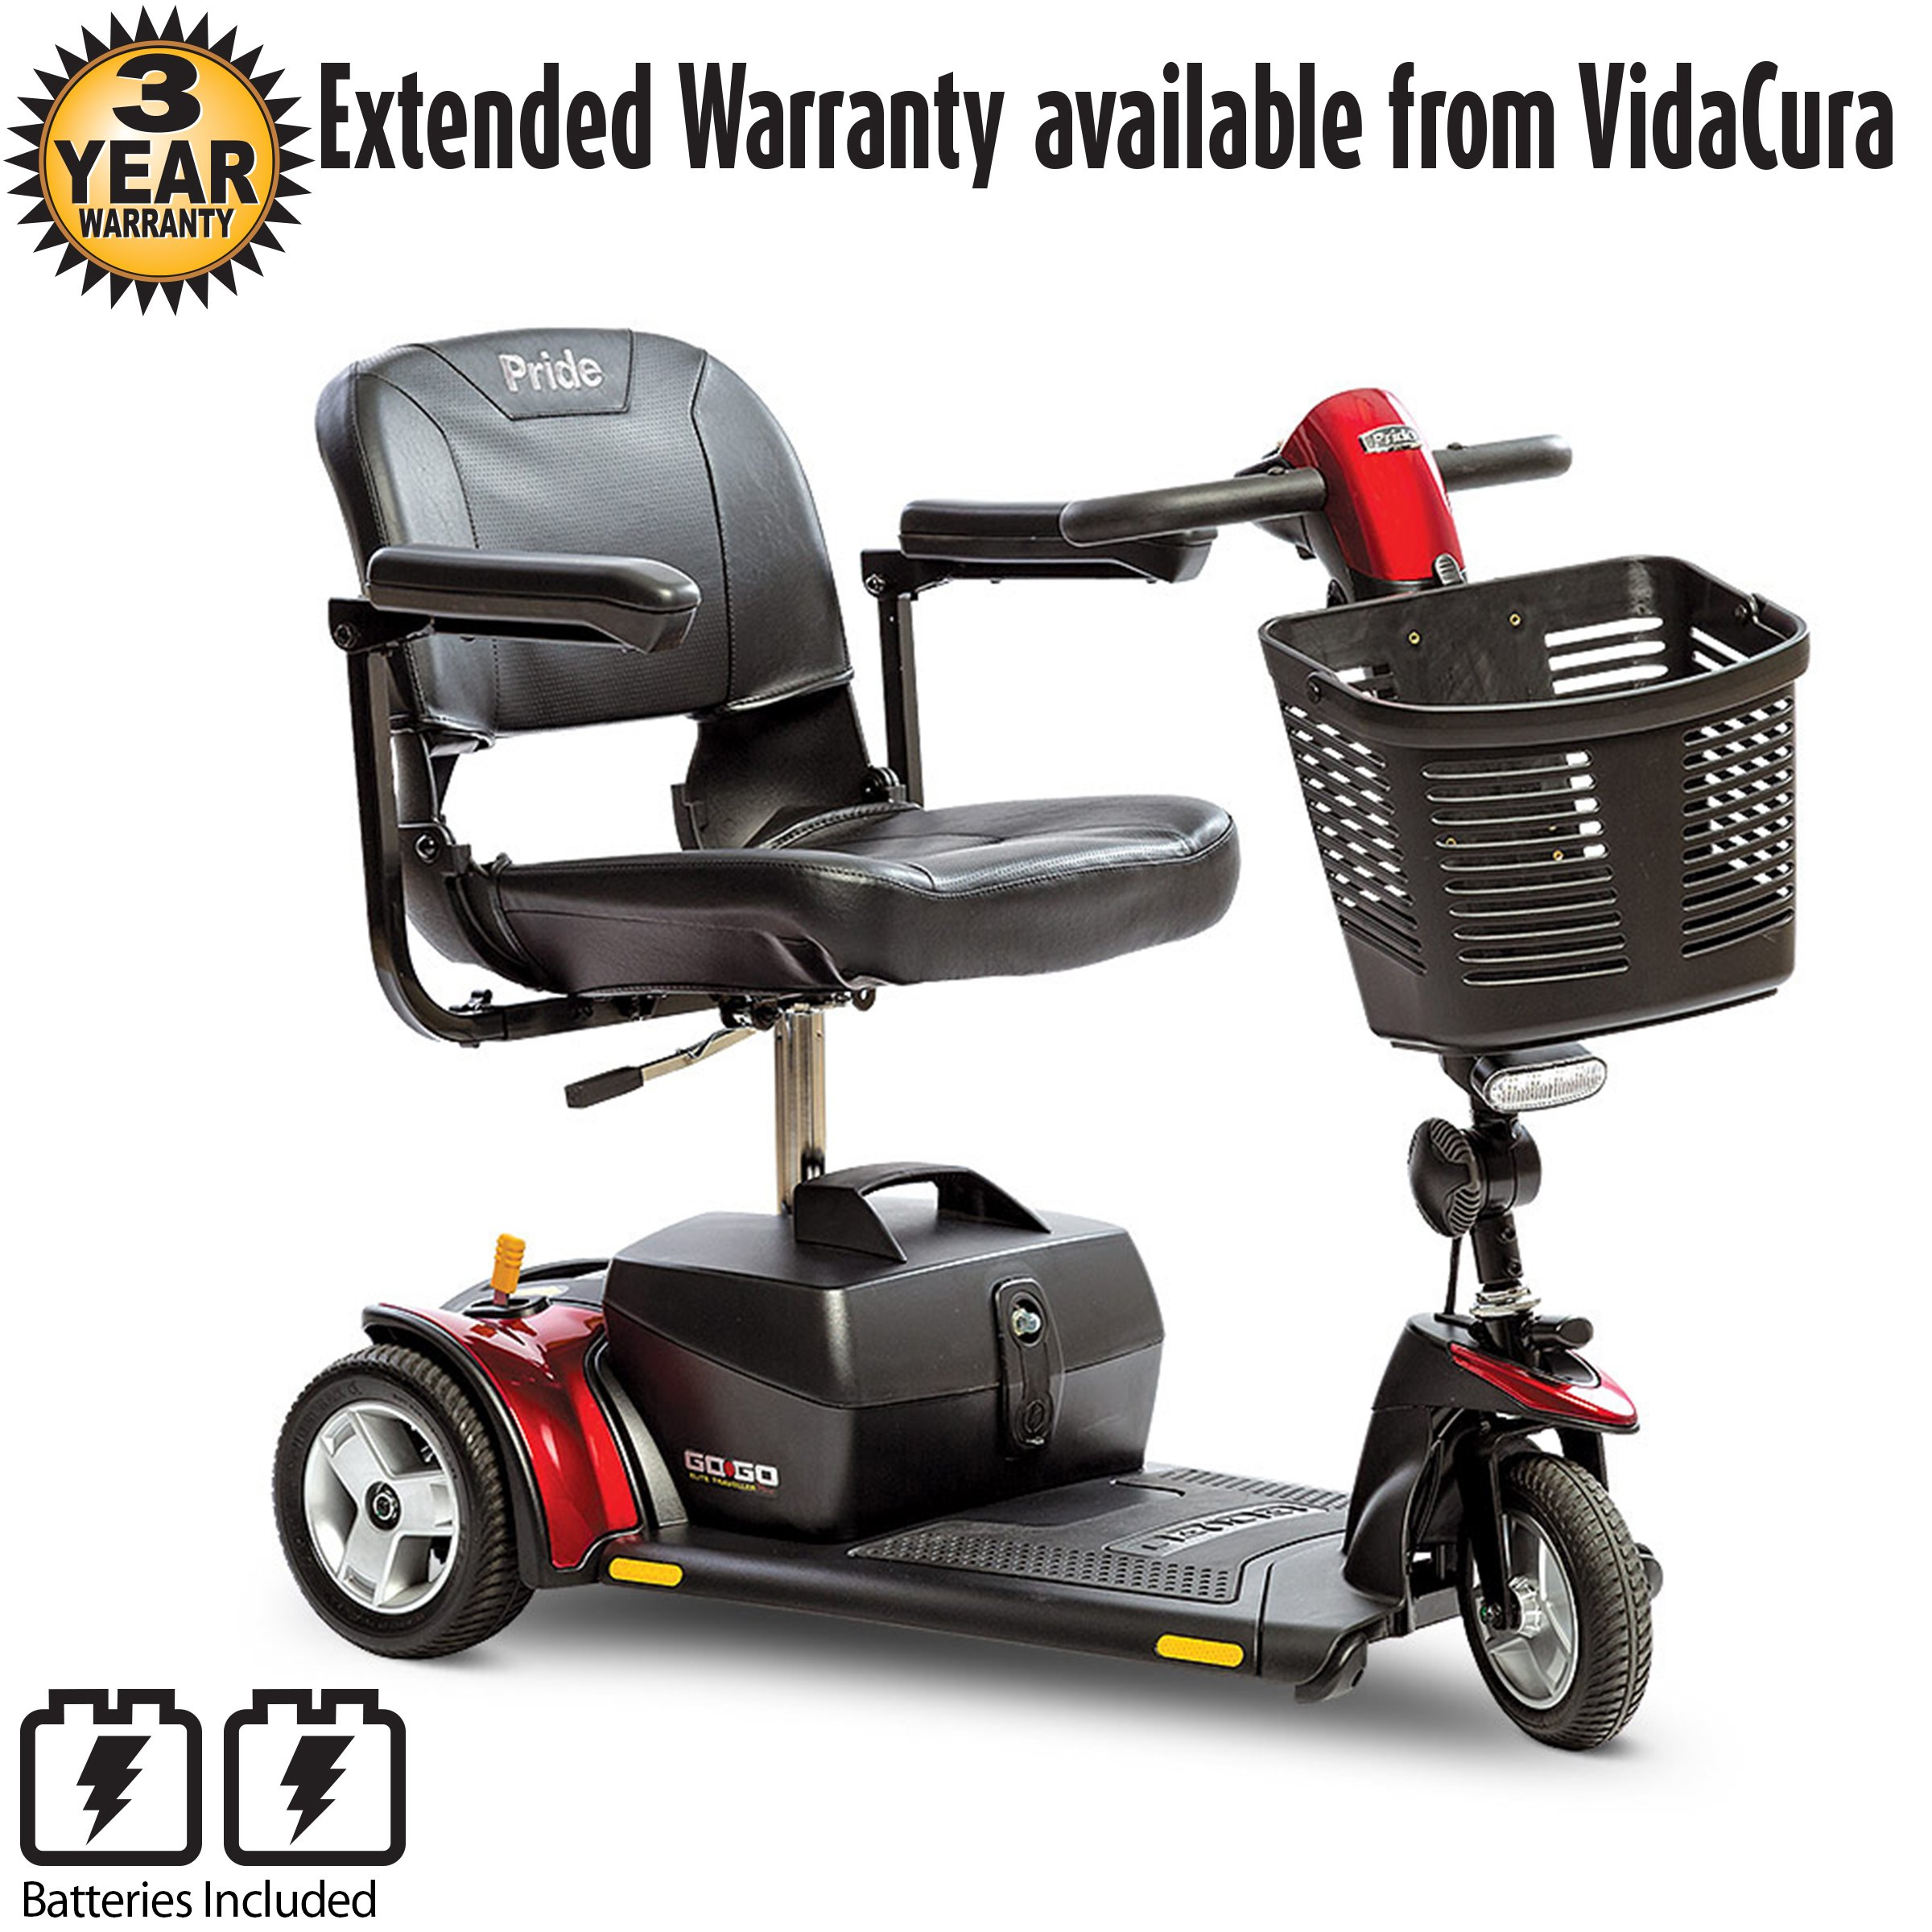 Pride Go-Go Elite Traveller 3-Wheel Scooter with 18 AH Battery Including 5 Year Extended Warranty